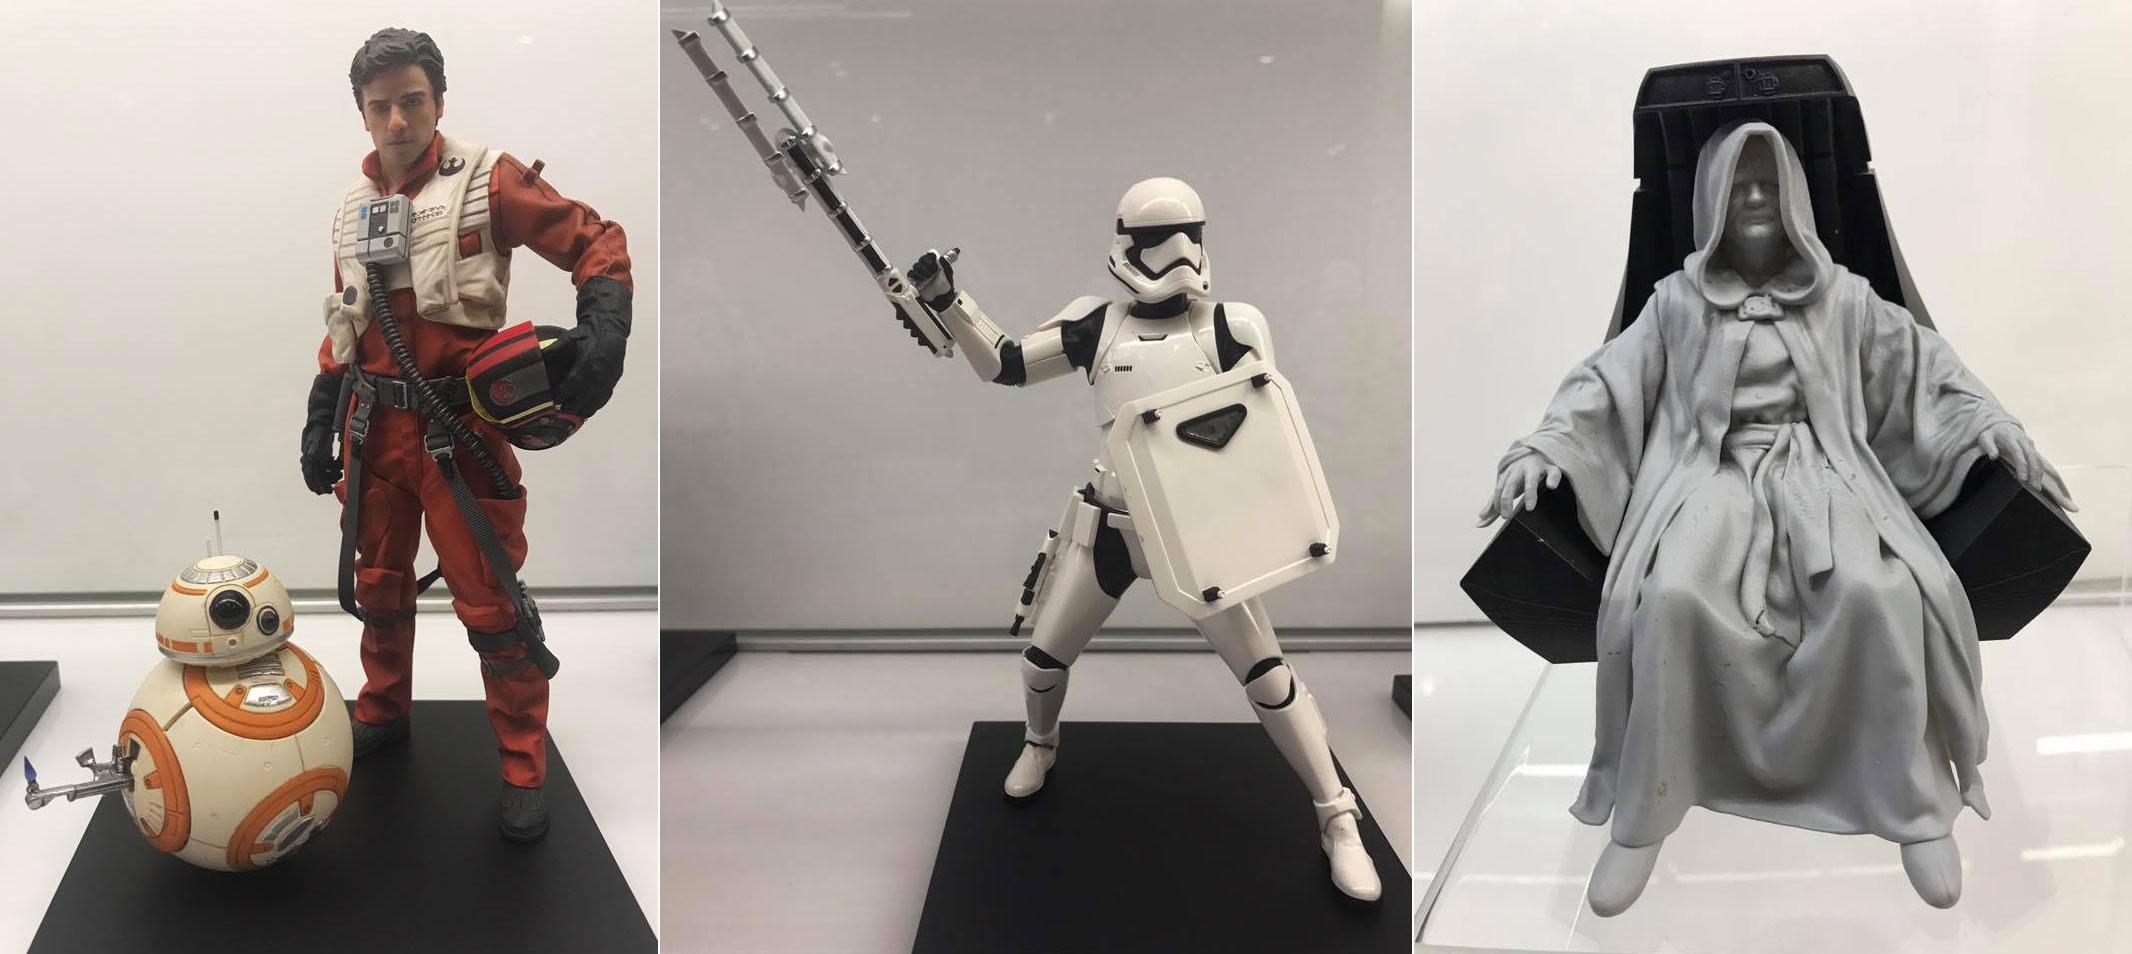 kotobukiya-star-wars-celebration-statues